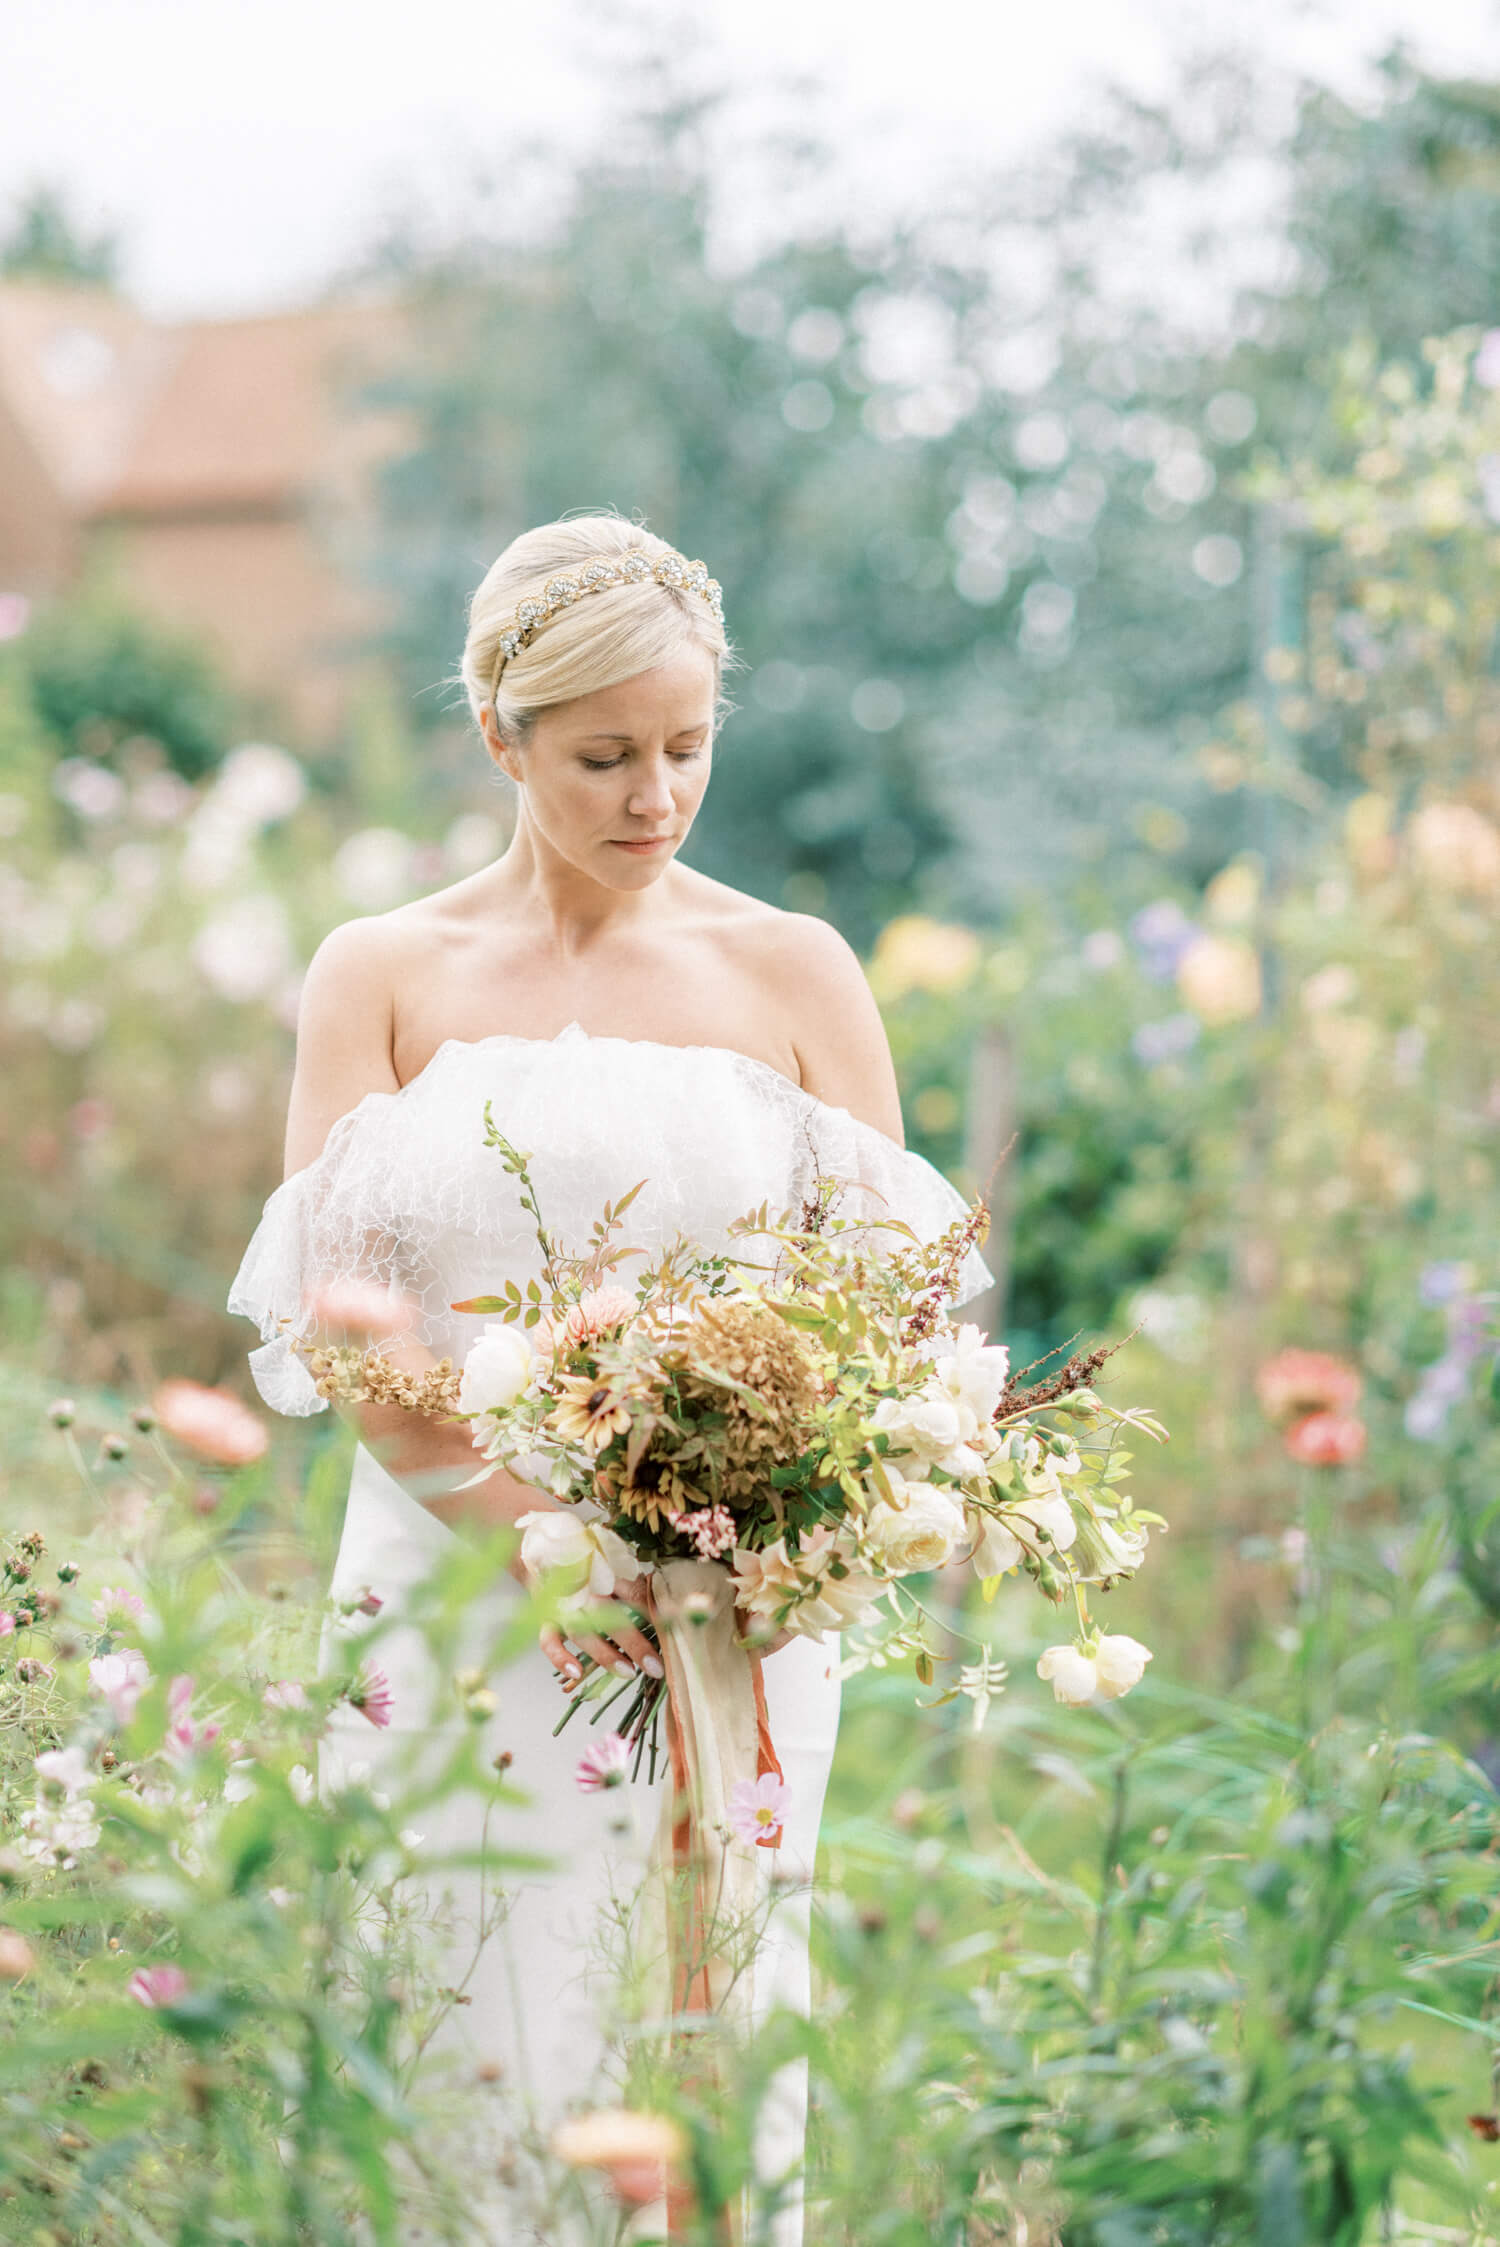 English Countryside Autumn Wedding at a Flower Farm | Photos and Text by Cristina Ilao Photography | In photo: simple bride walking in the middle of a flower farm and wearing an elegant wedding dress by UK dress designer Cherry Williams London